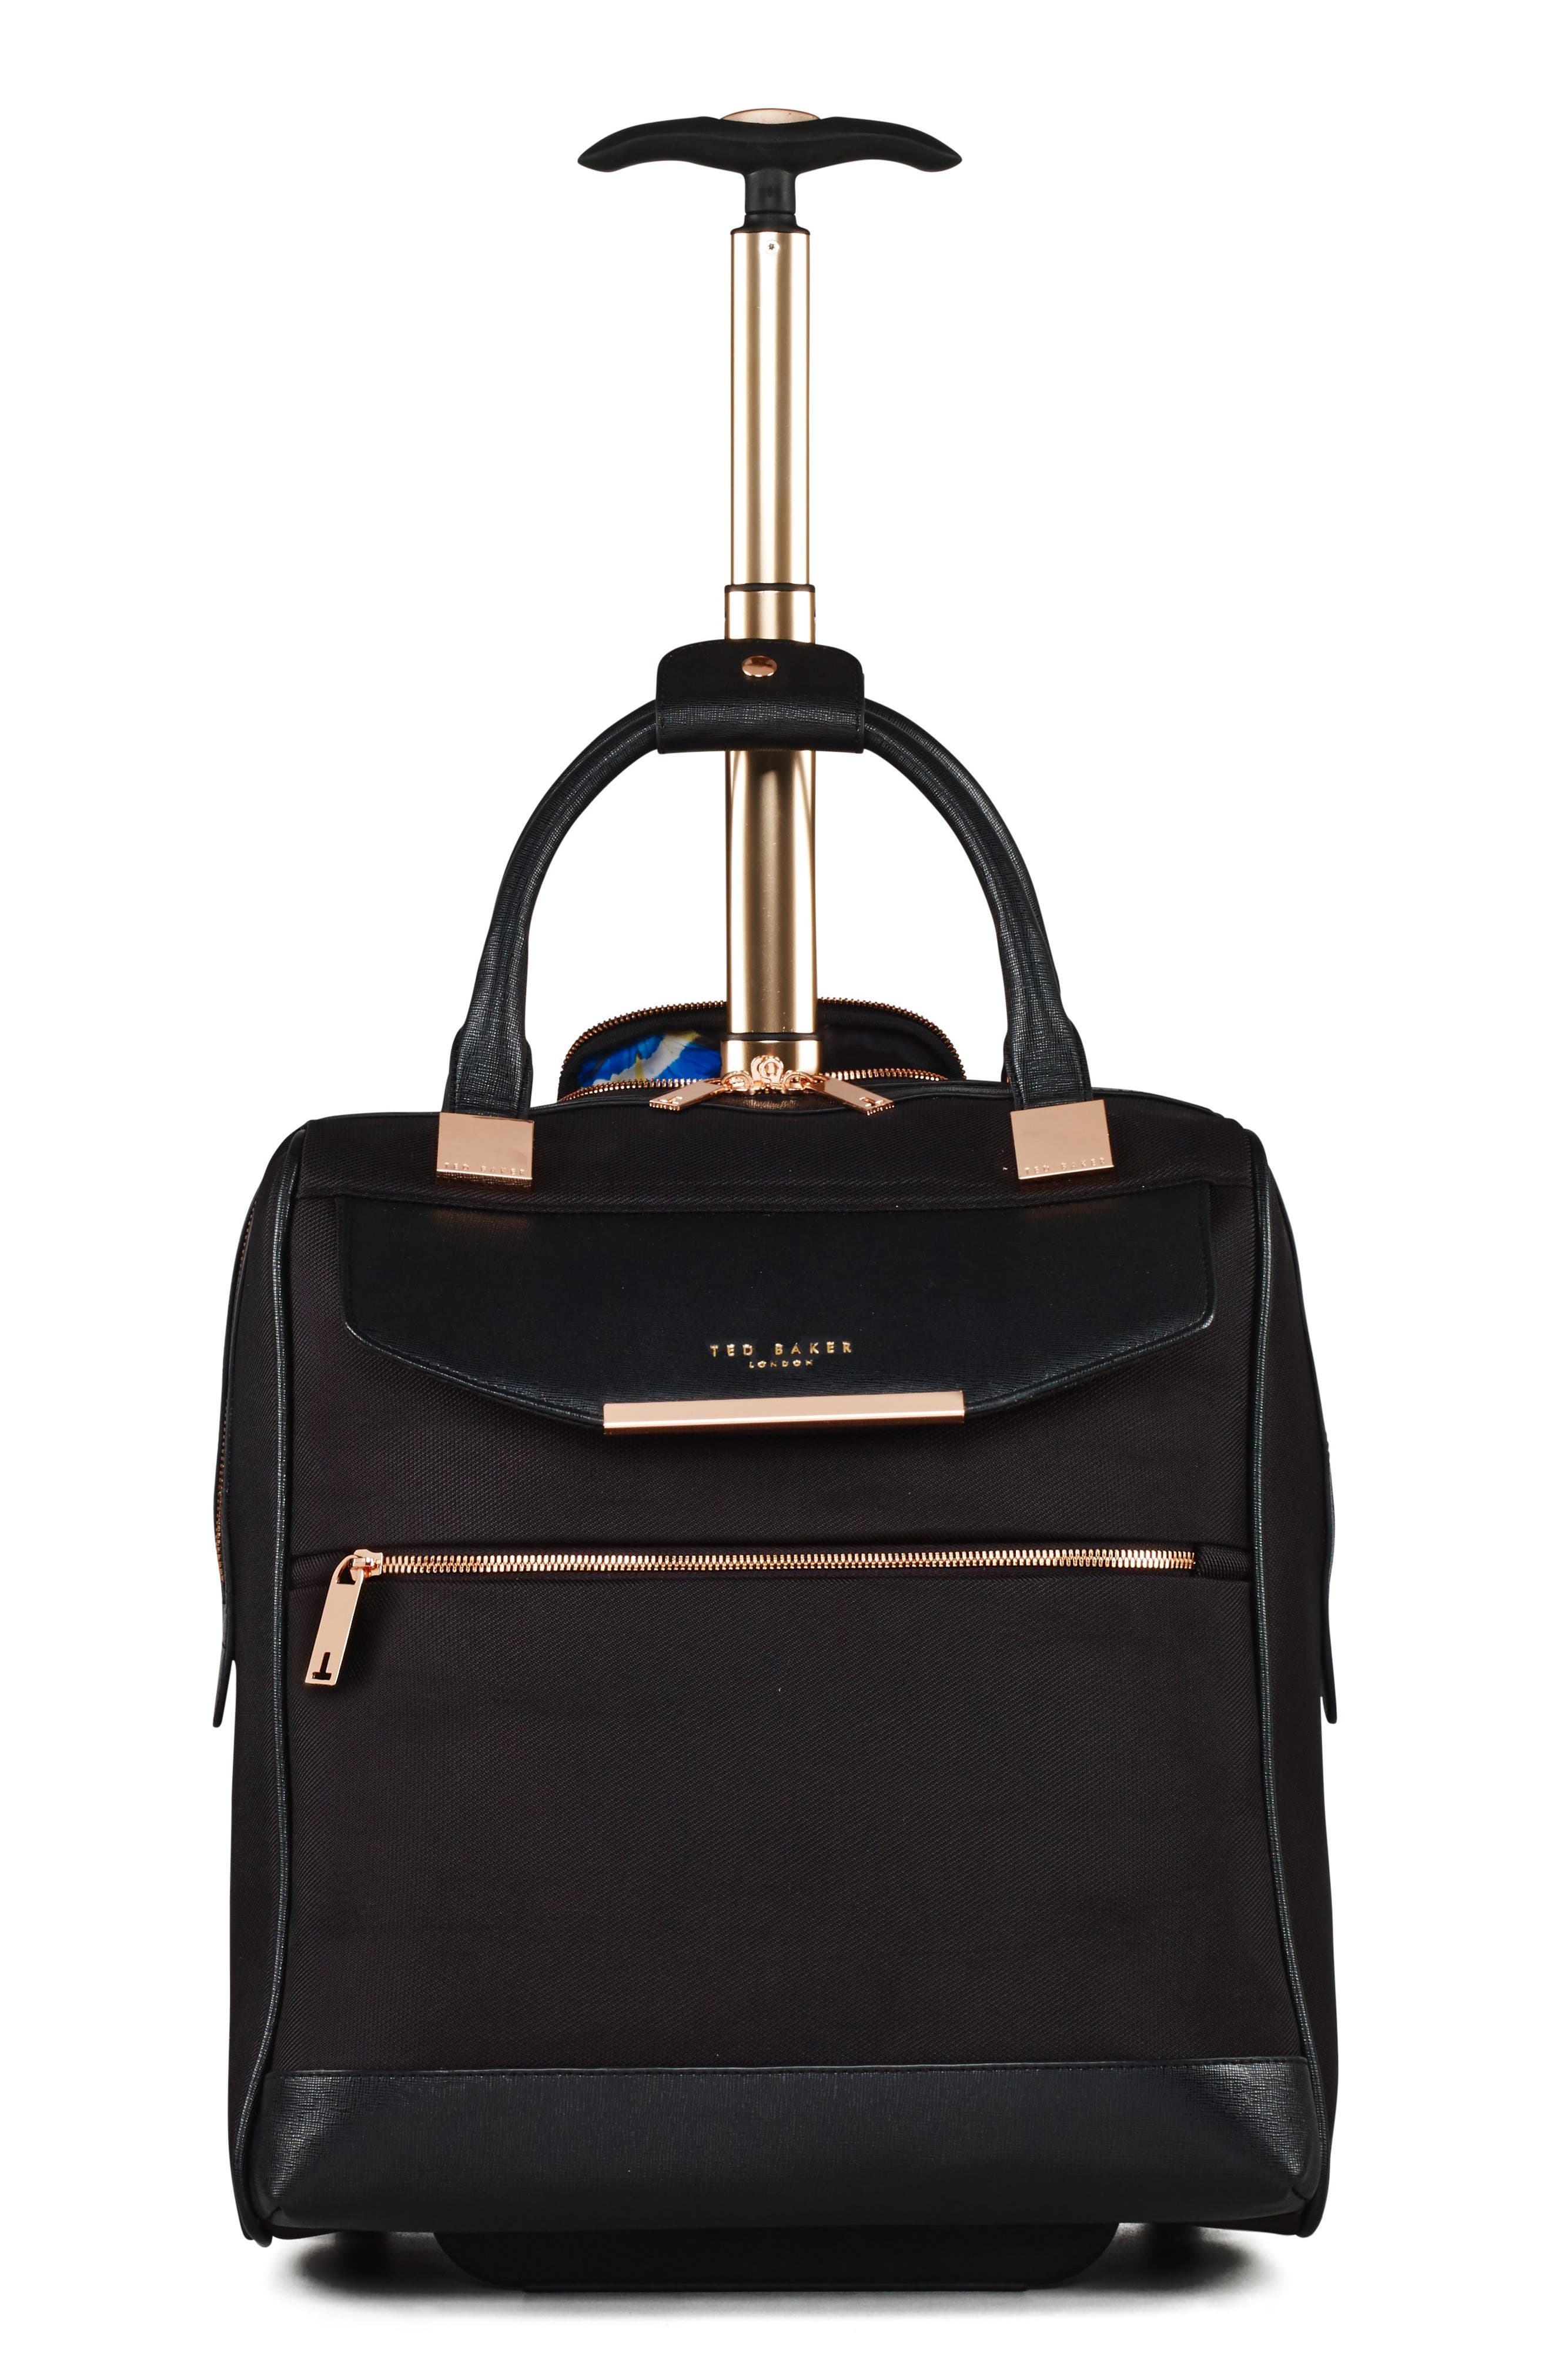 TED BAKER LONDON, 16-Inch Trolley Packing Case, Main thumbnail 1, color, BLACK